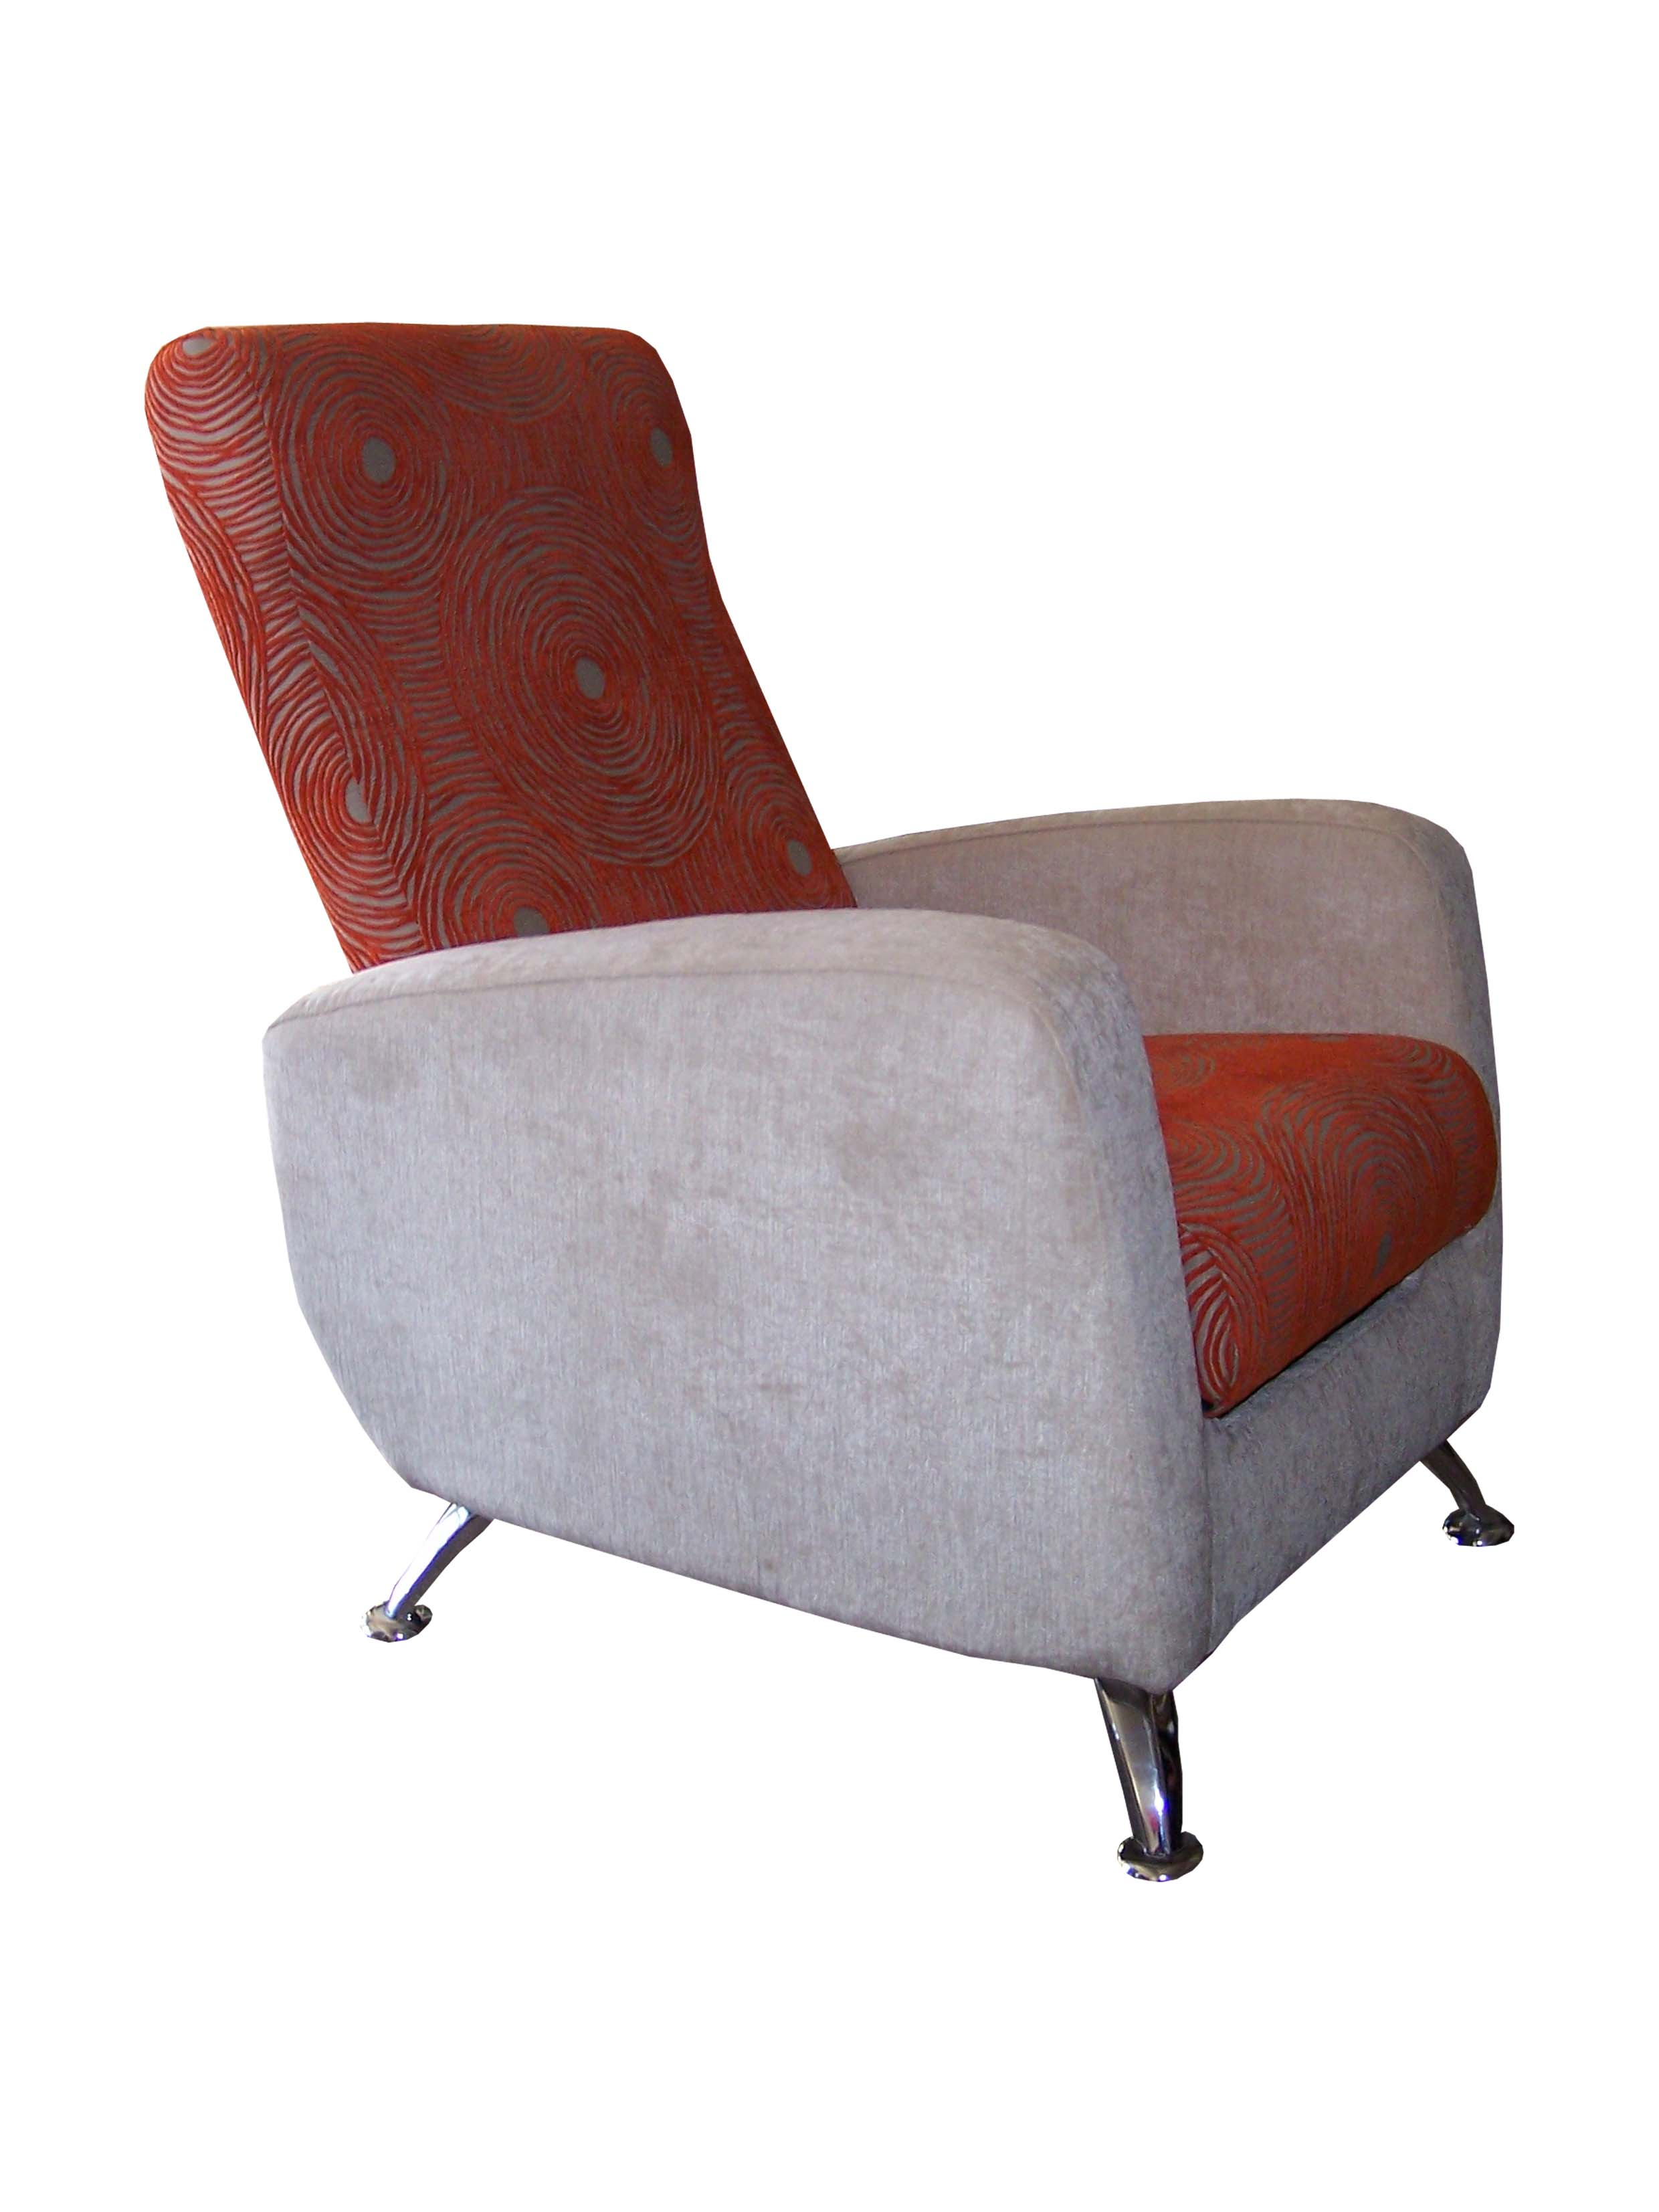 first high chair invented desk doesn't stay up edition upholstery brisbane custom made sofas